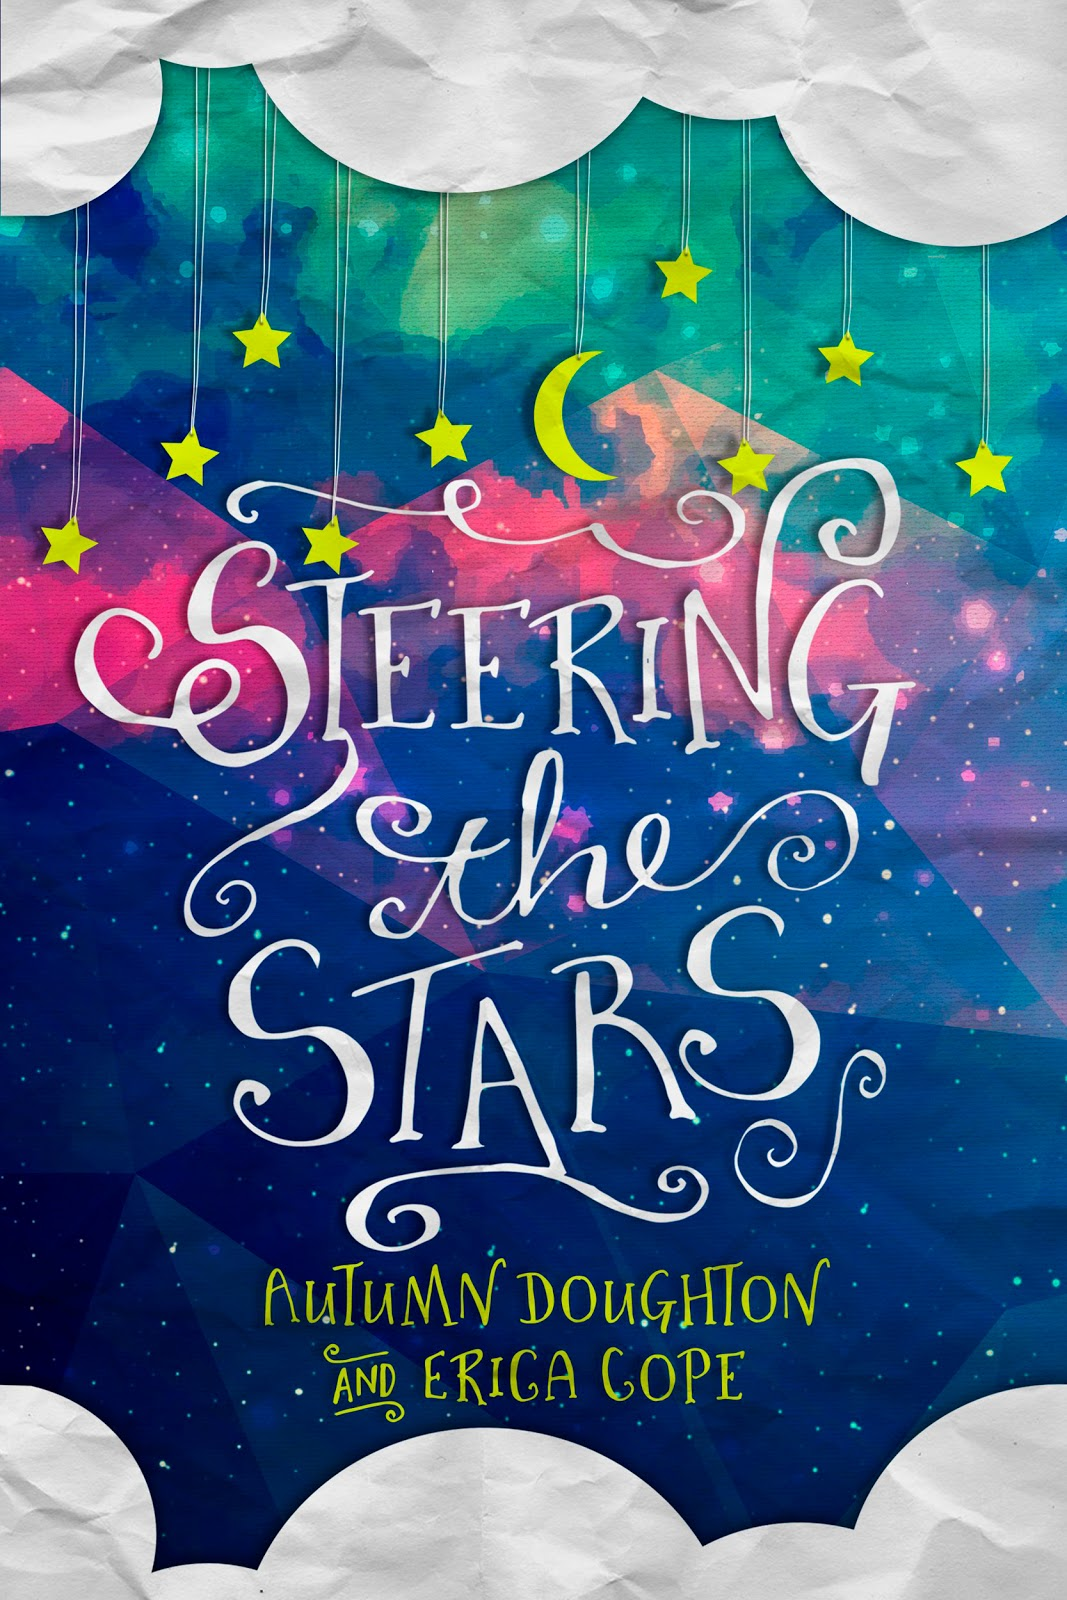 Steering the Stars by Erica Cope & Autumn Doughton